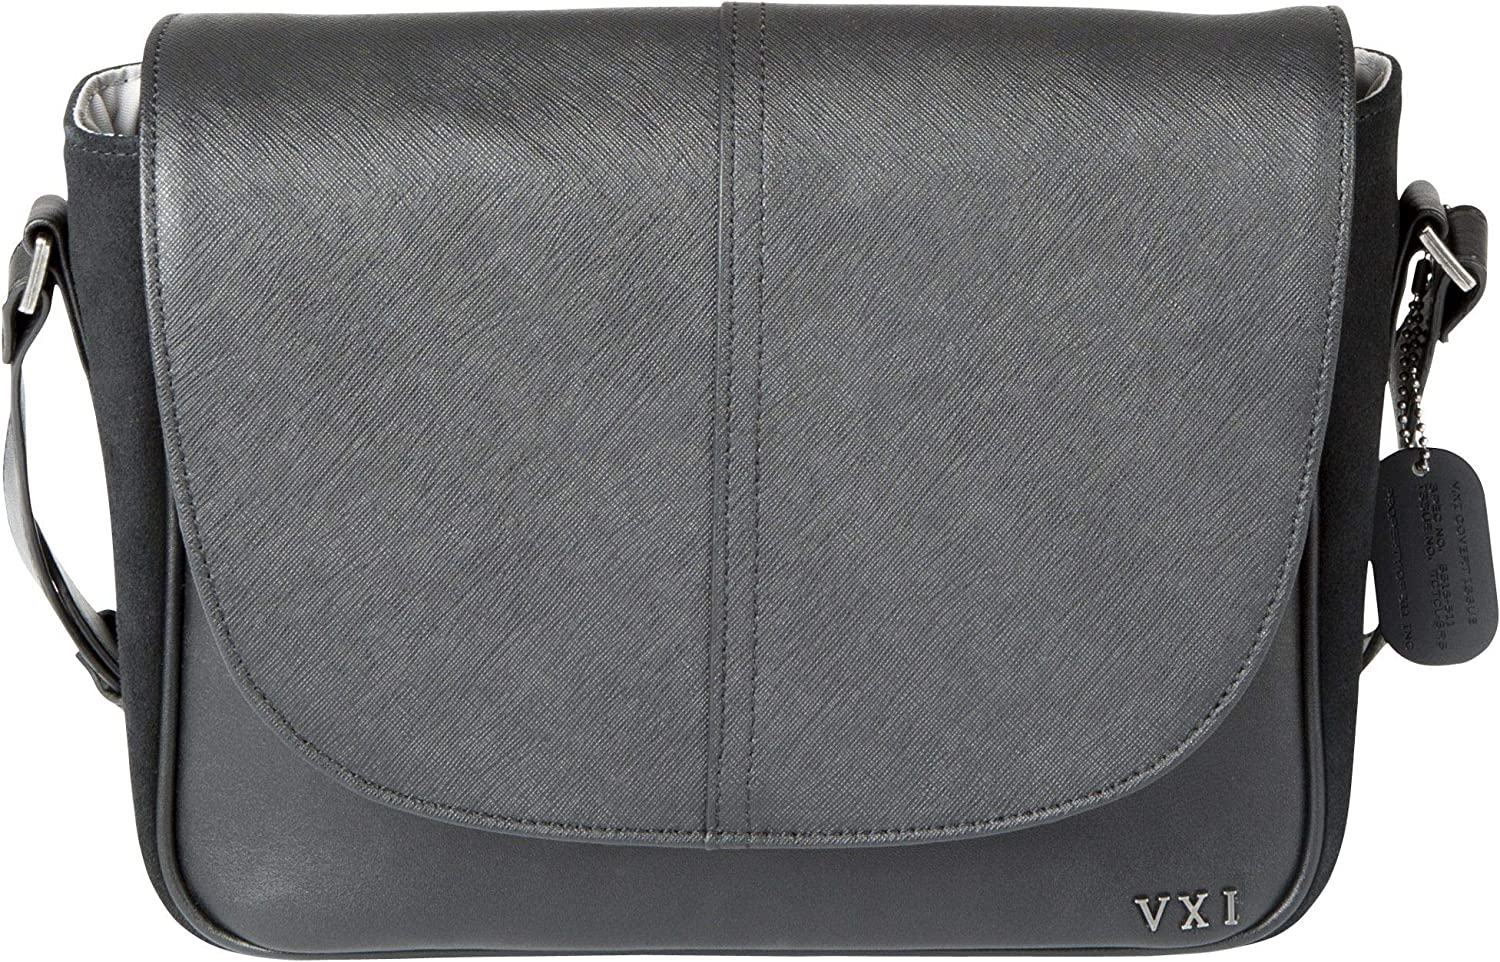 5.11 Tactical Women's Charlotte Crossbody Bag, Leather and Suede Exterior, YKK Zippers, Black, Style 56343